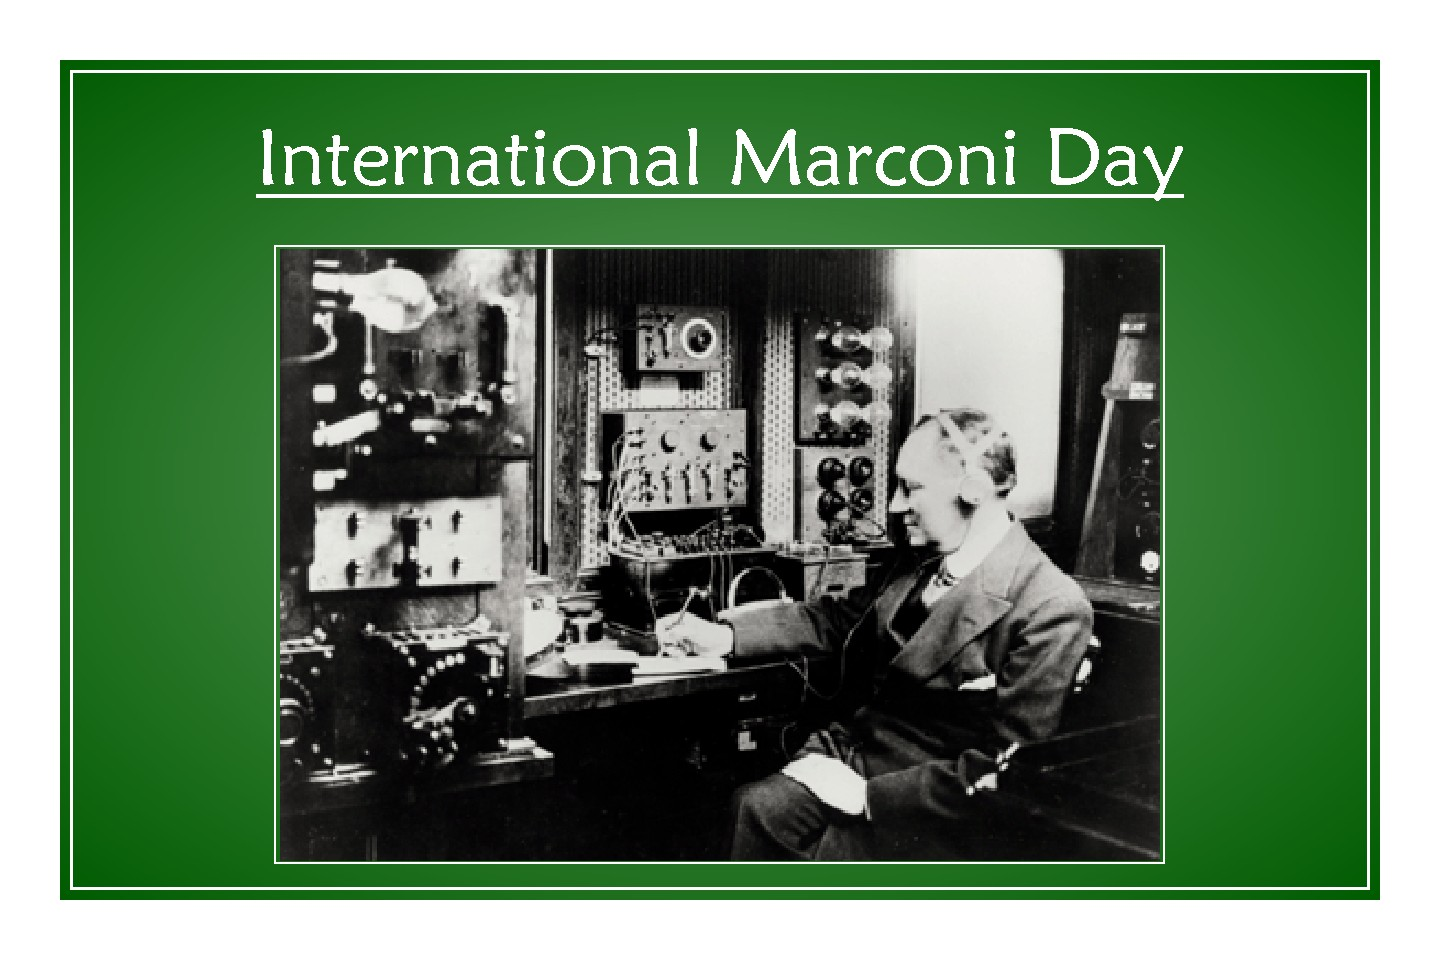 MarconiDay-Title